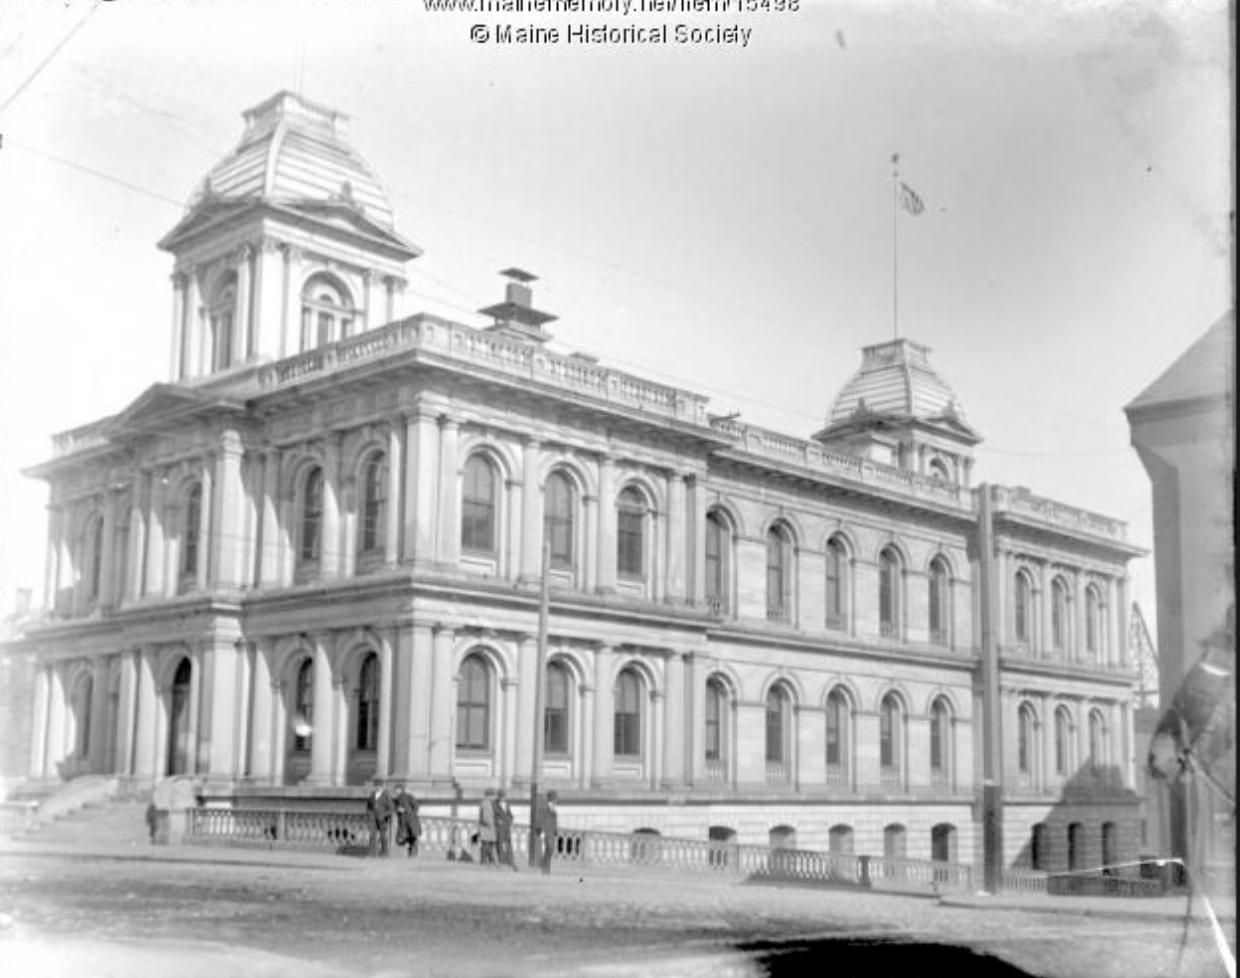 Historic Photo of U.S. Custom House    (credit: Maine Historical Society)